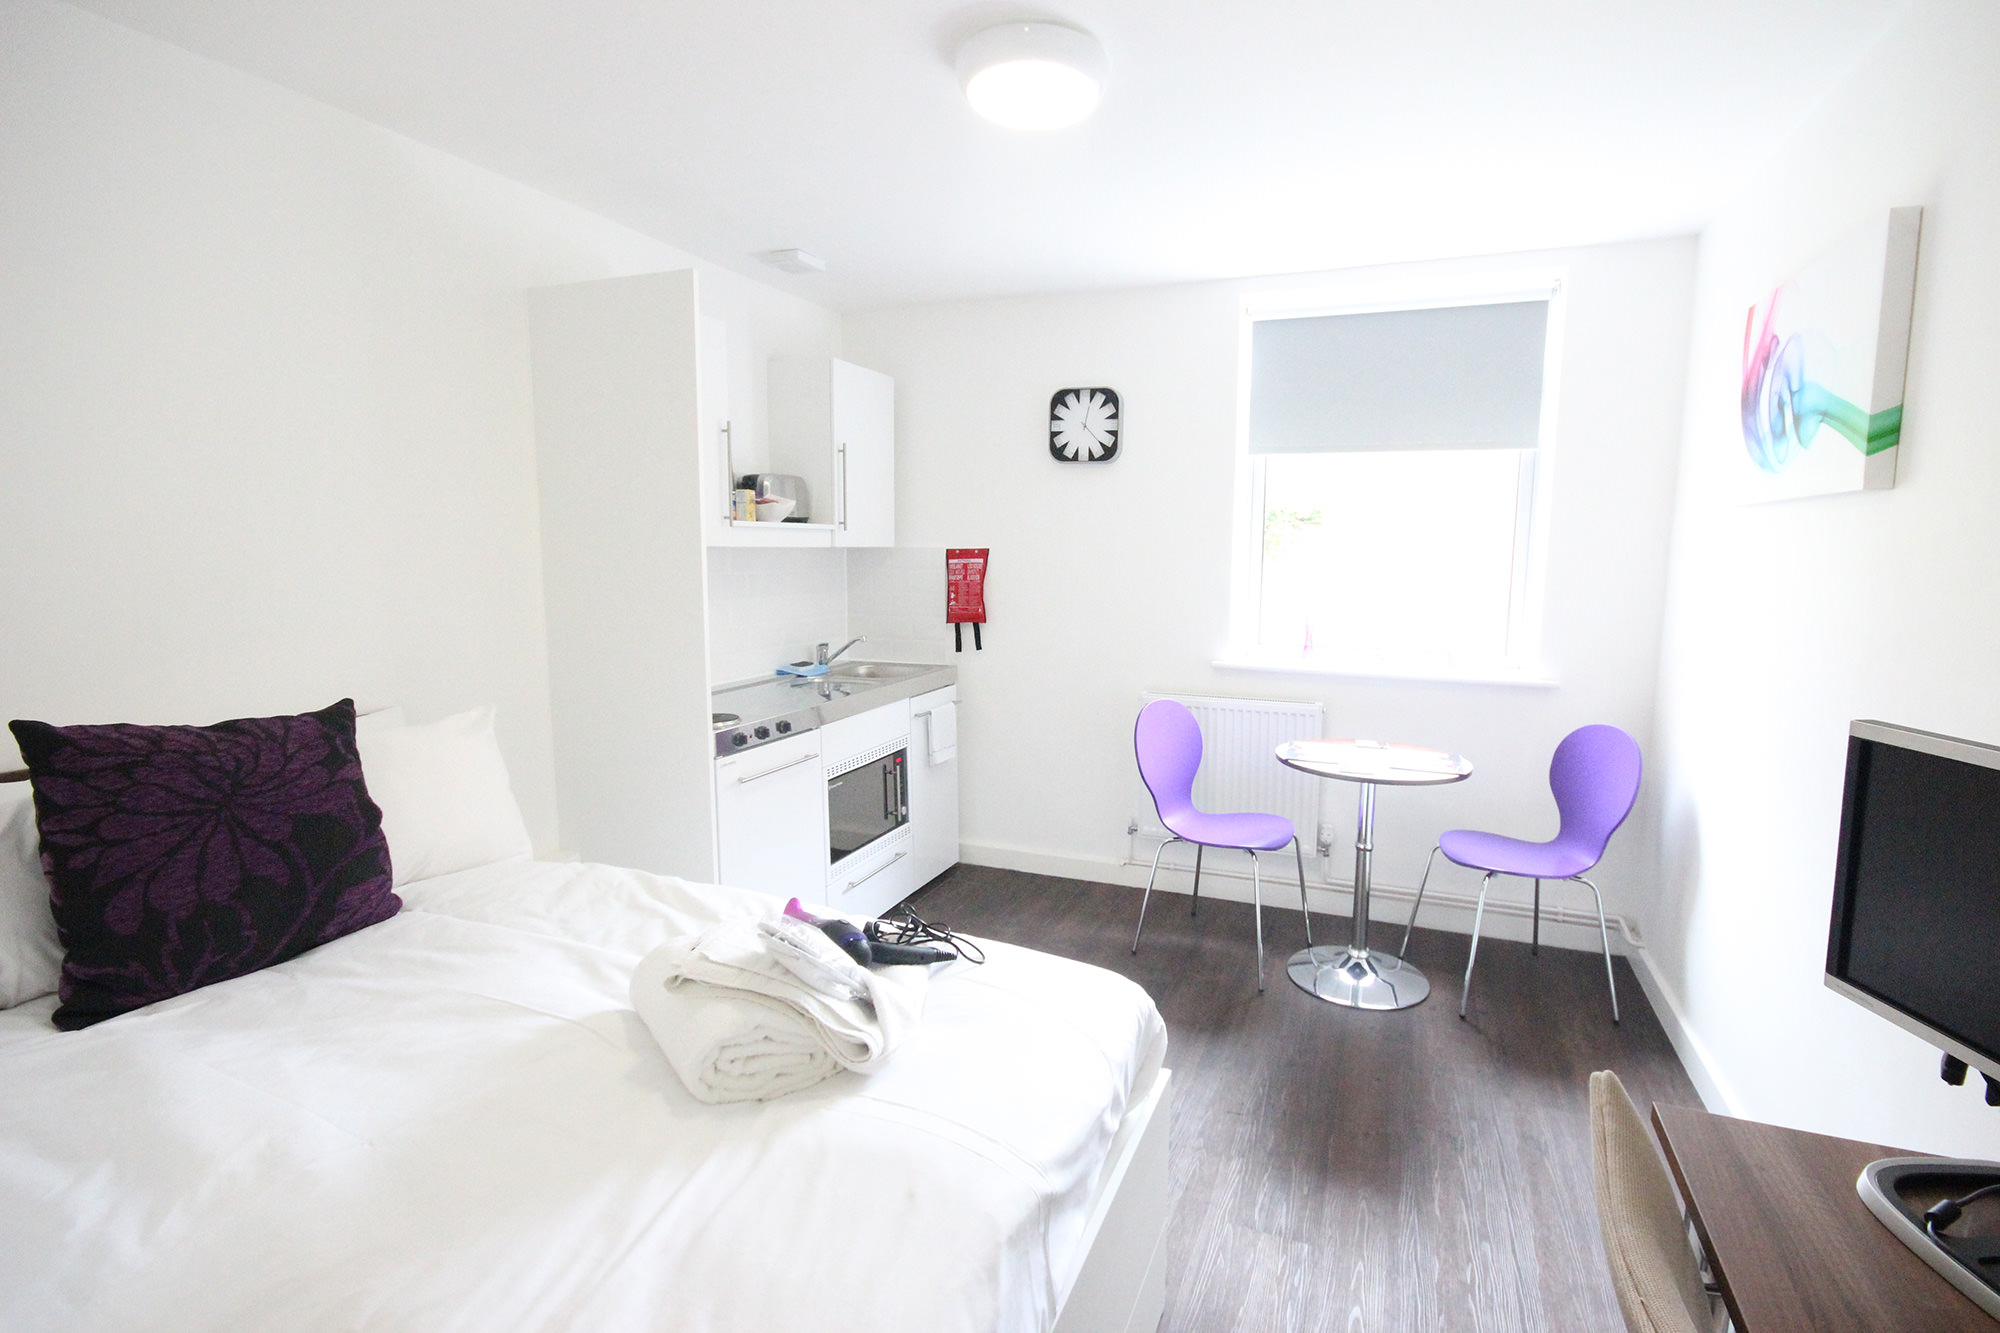 Studio Apartment at London Park House in Luton